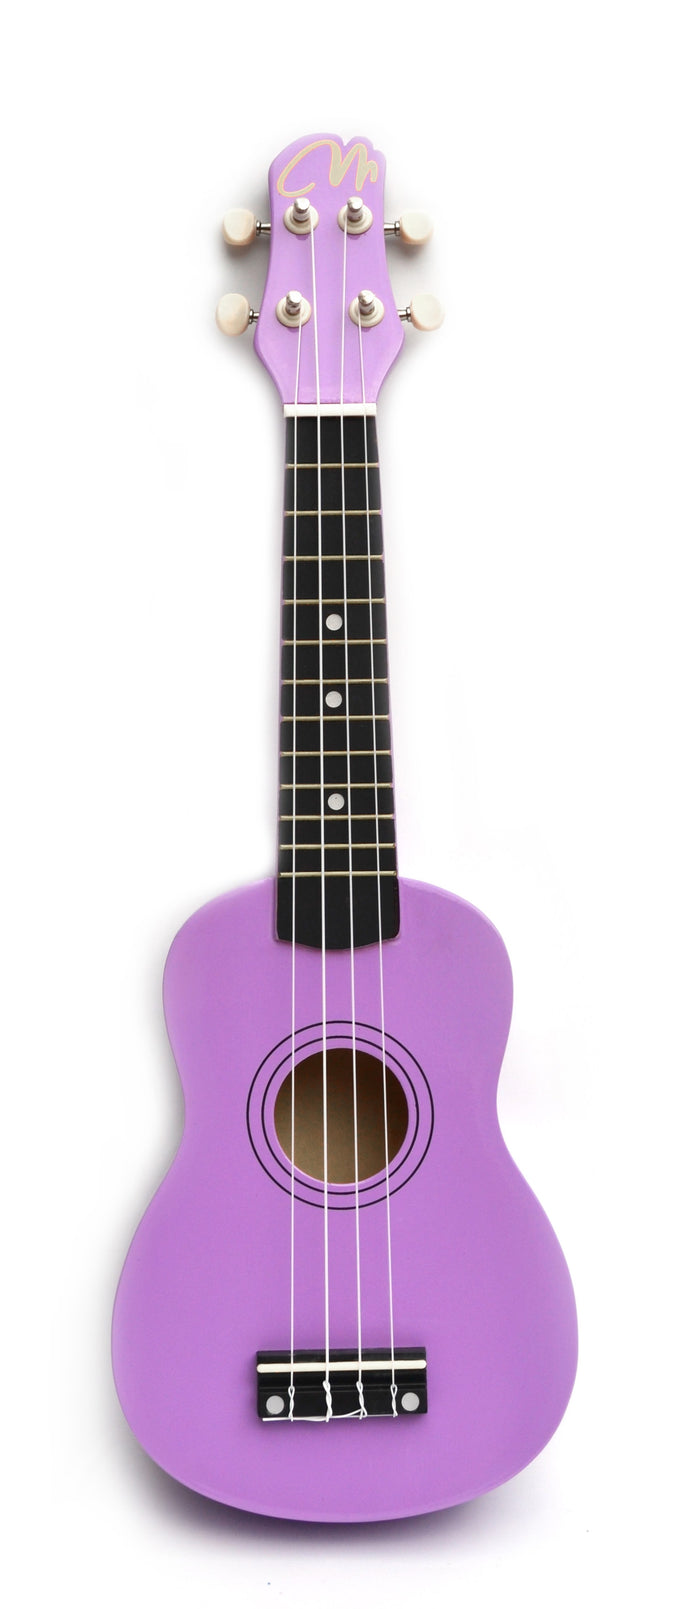 Magma Soprano Ukulele 21 inch Glossy Purple Color with Bag (MK20VB)